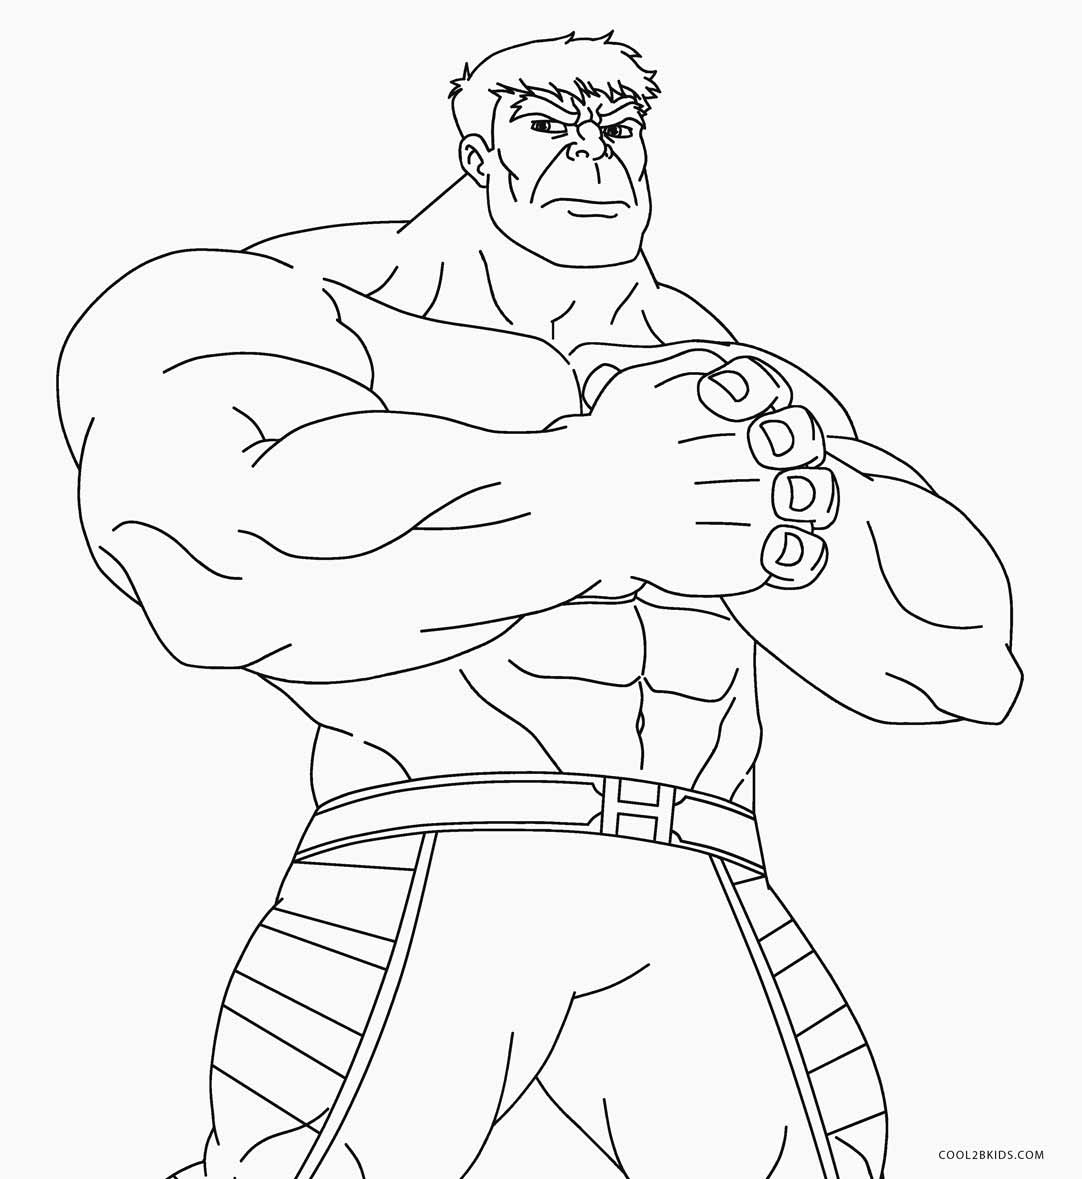 Free coloring pages incredible hulk - Free Hulk Coloring Pages